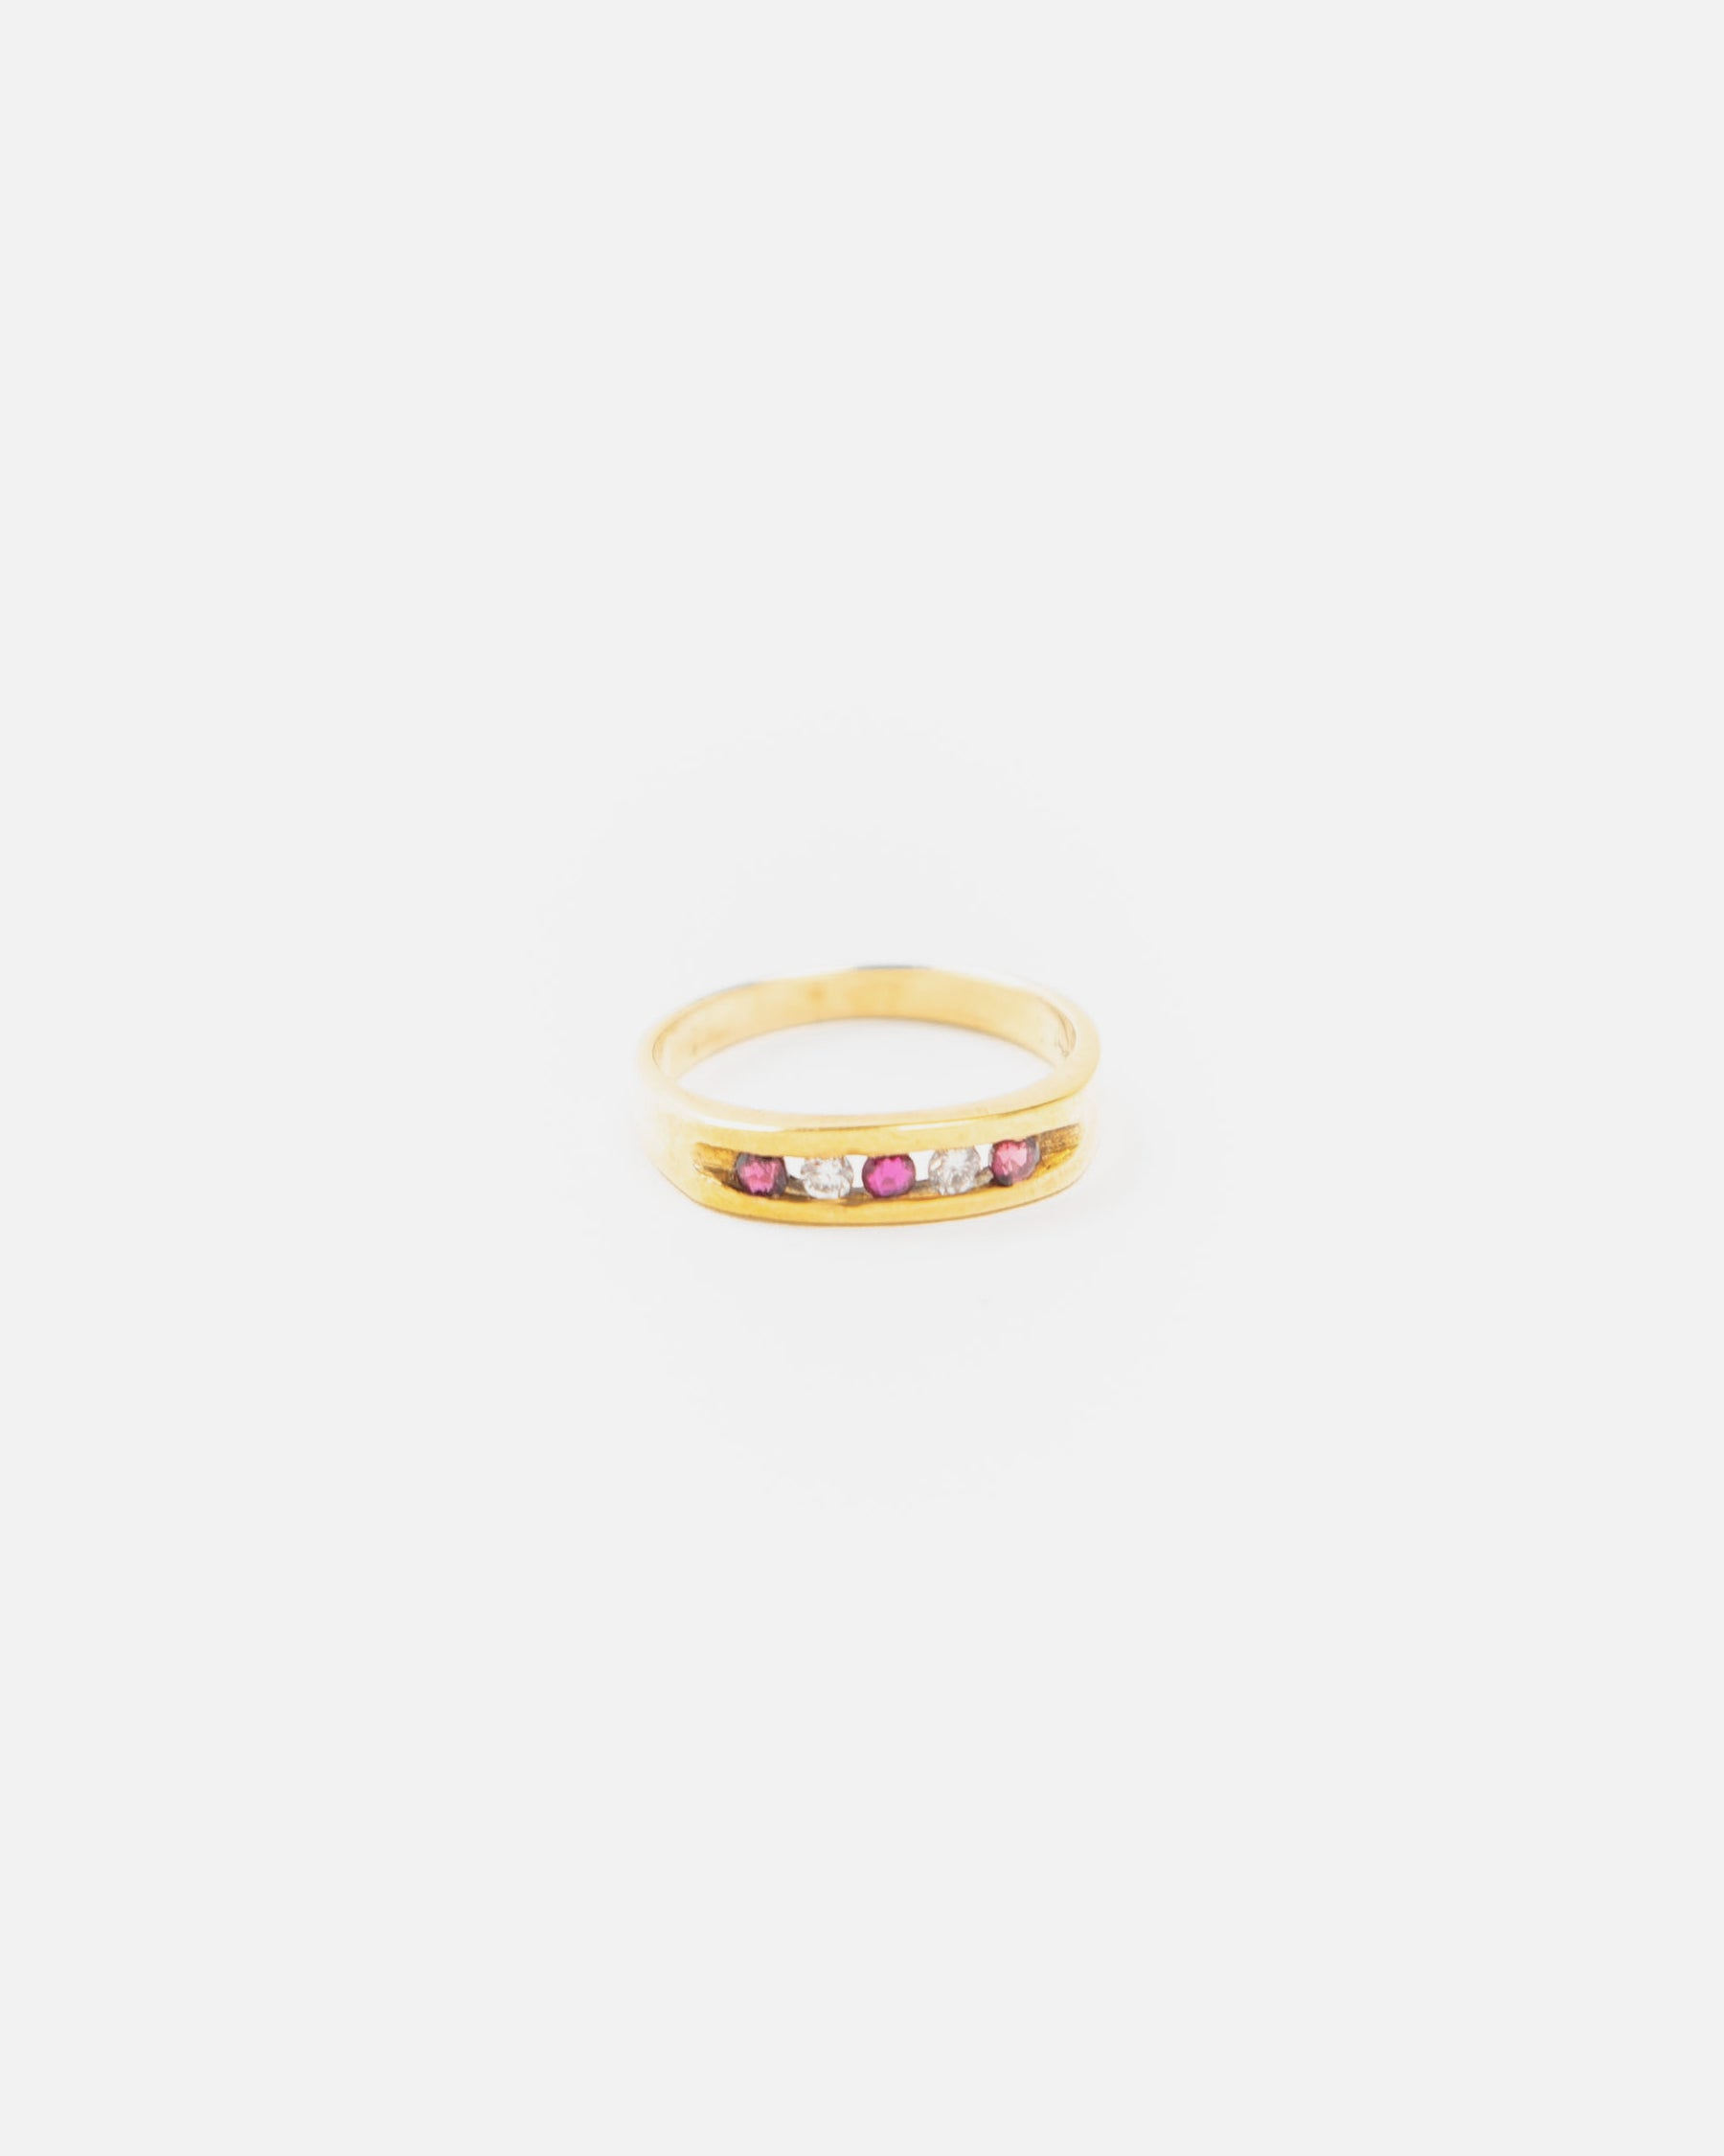 14K Gold W/ Ruby and Diamond Ring